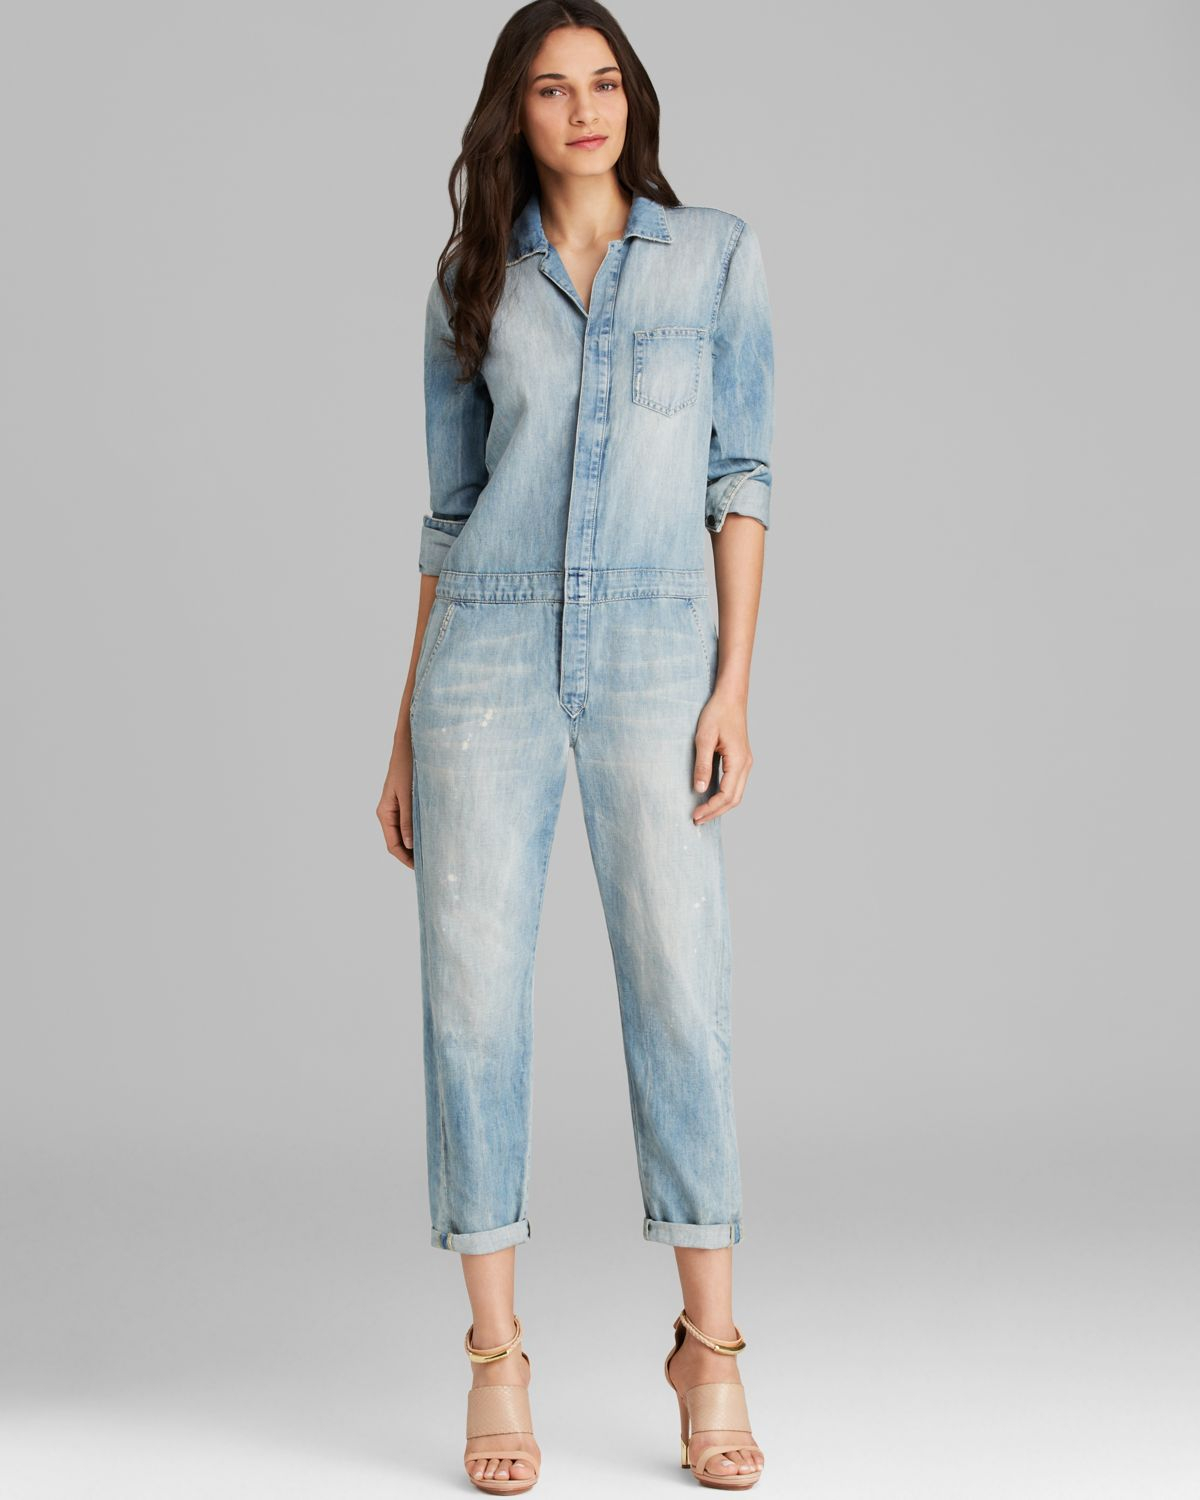 5d64d0dfad8 Gallery. Previously sold at  Bloomingdale s · Women s Denim Jumpsuits ...